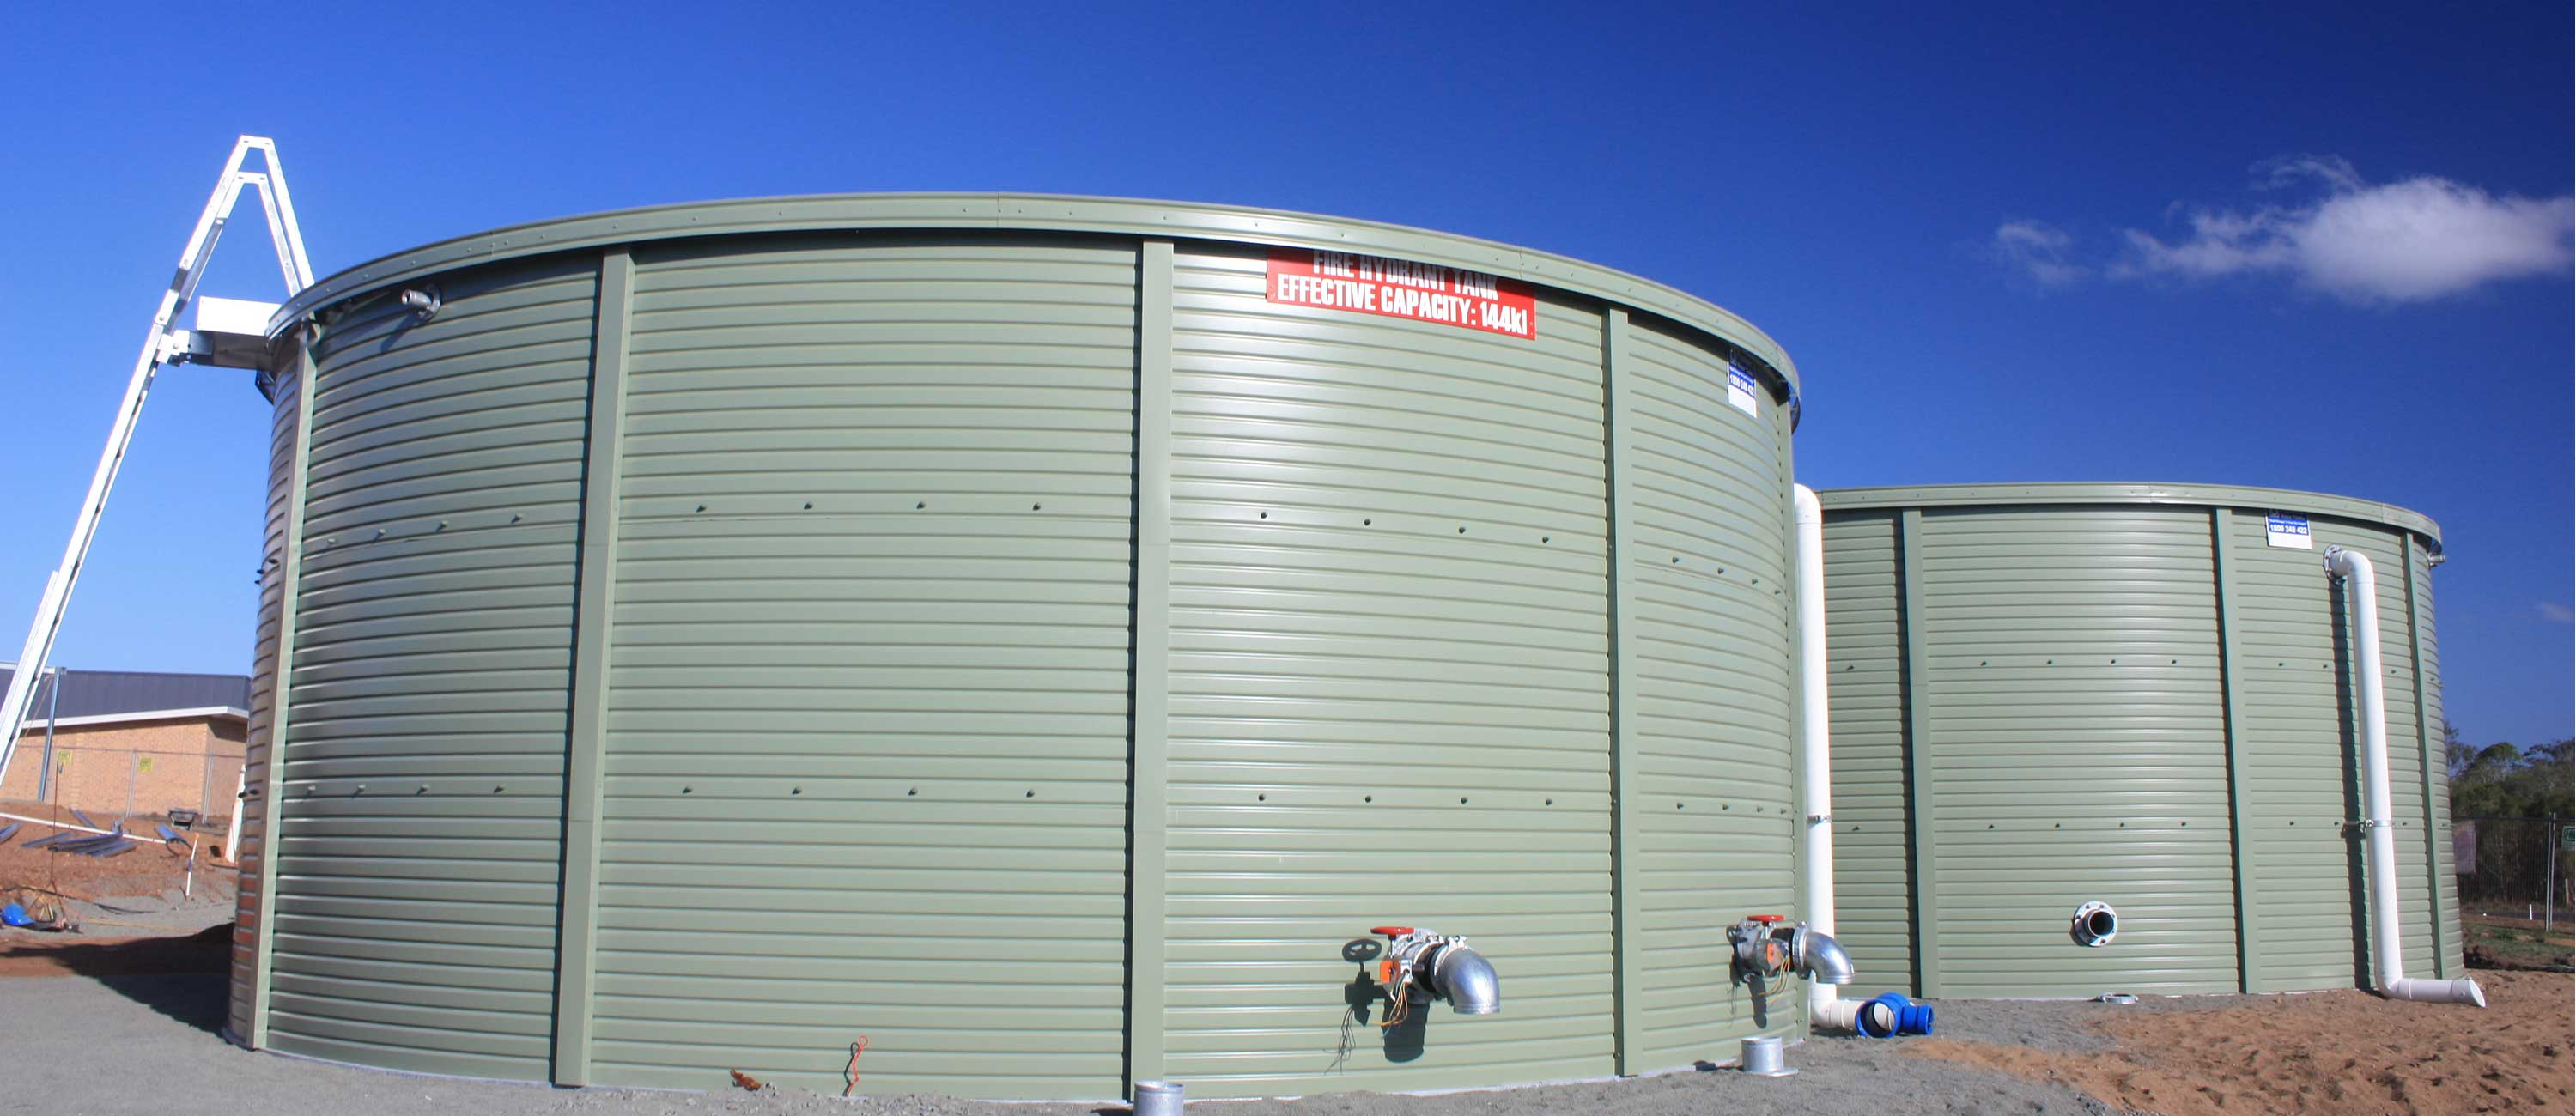 & Commercial Water Tanks u2013 Acer Water Tanks